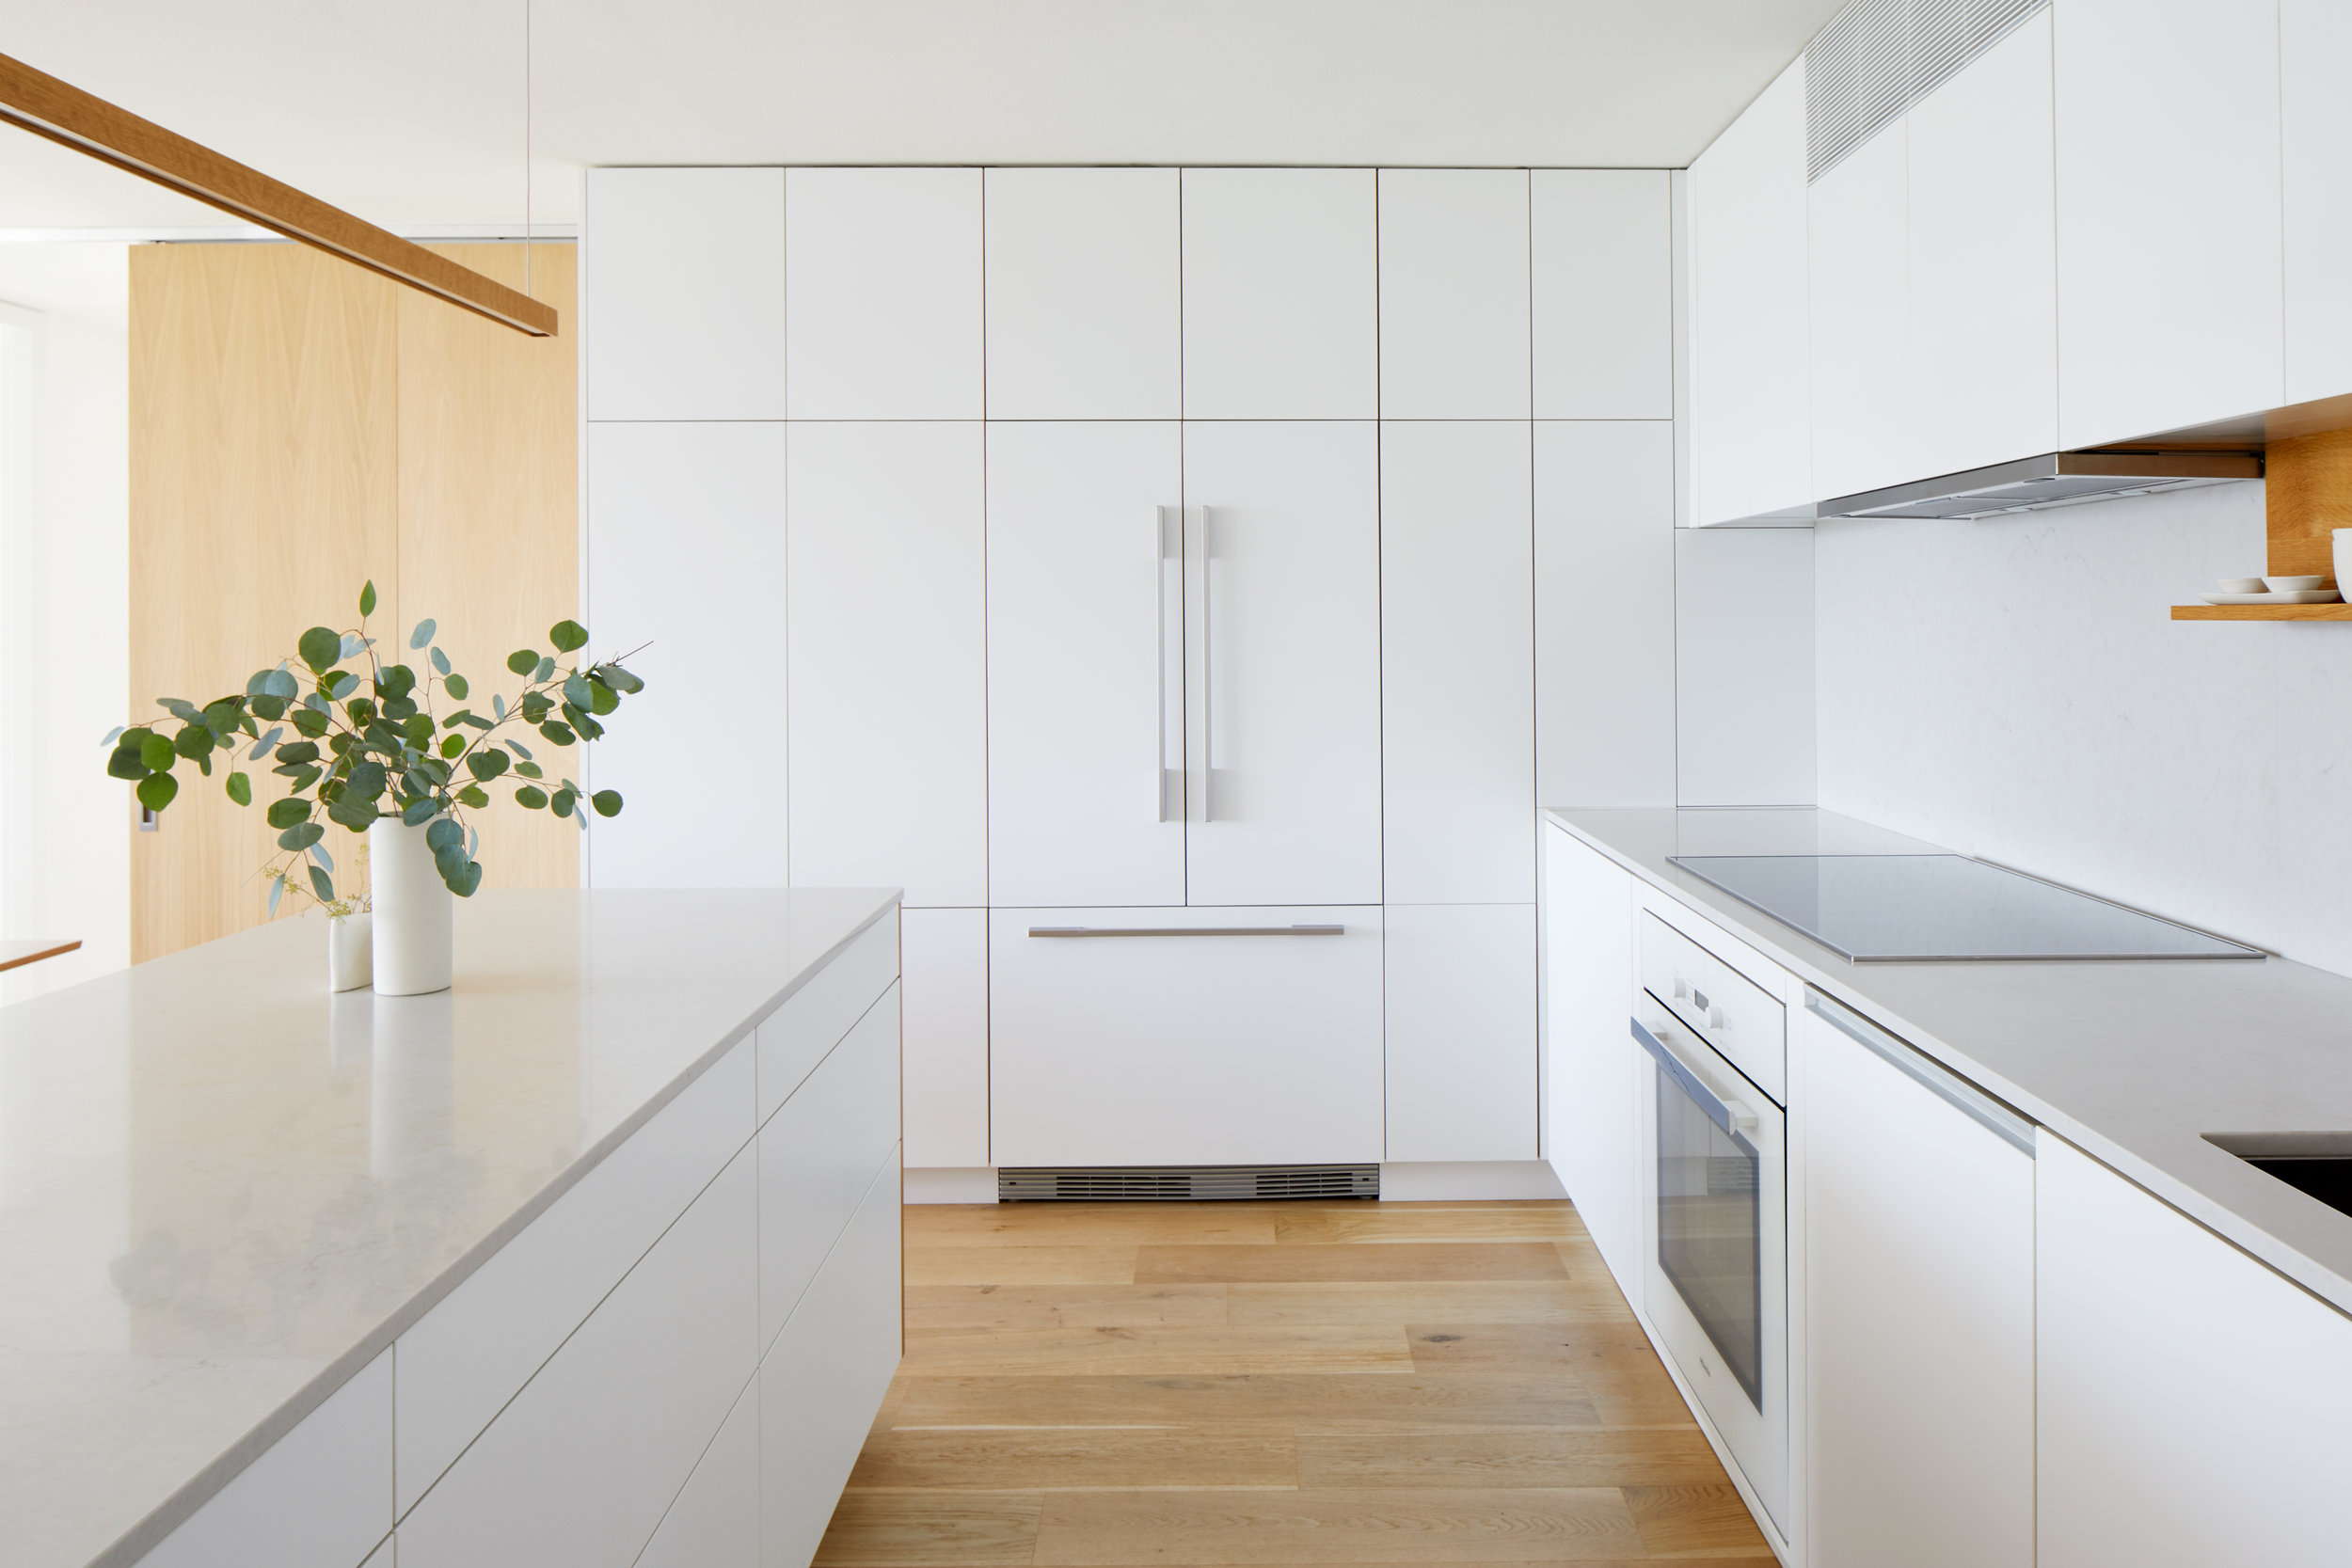 White / Oak Kitchen - Apartment Renovation, Chicago